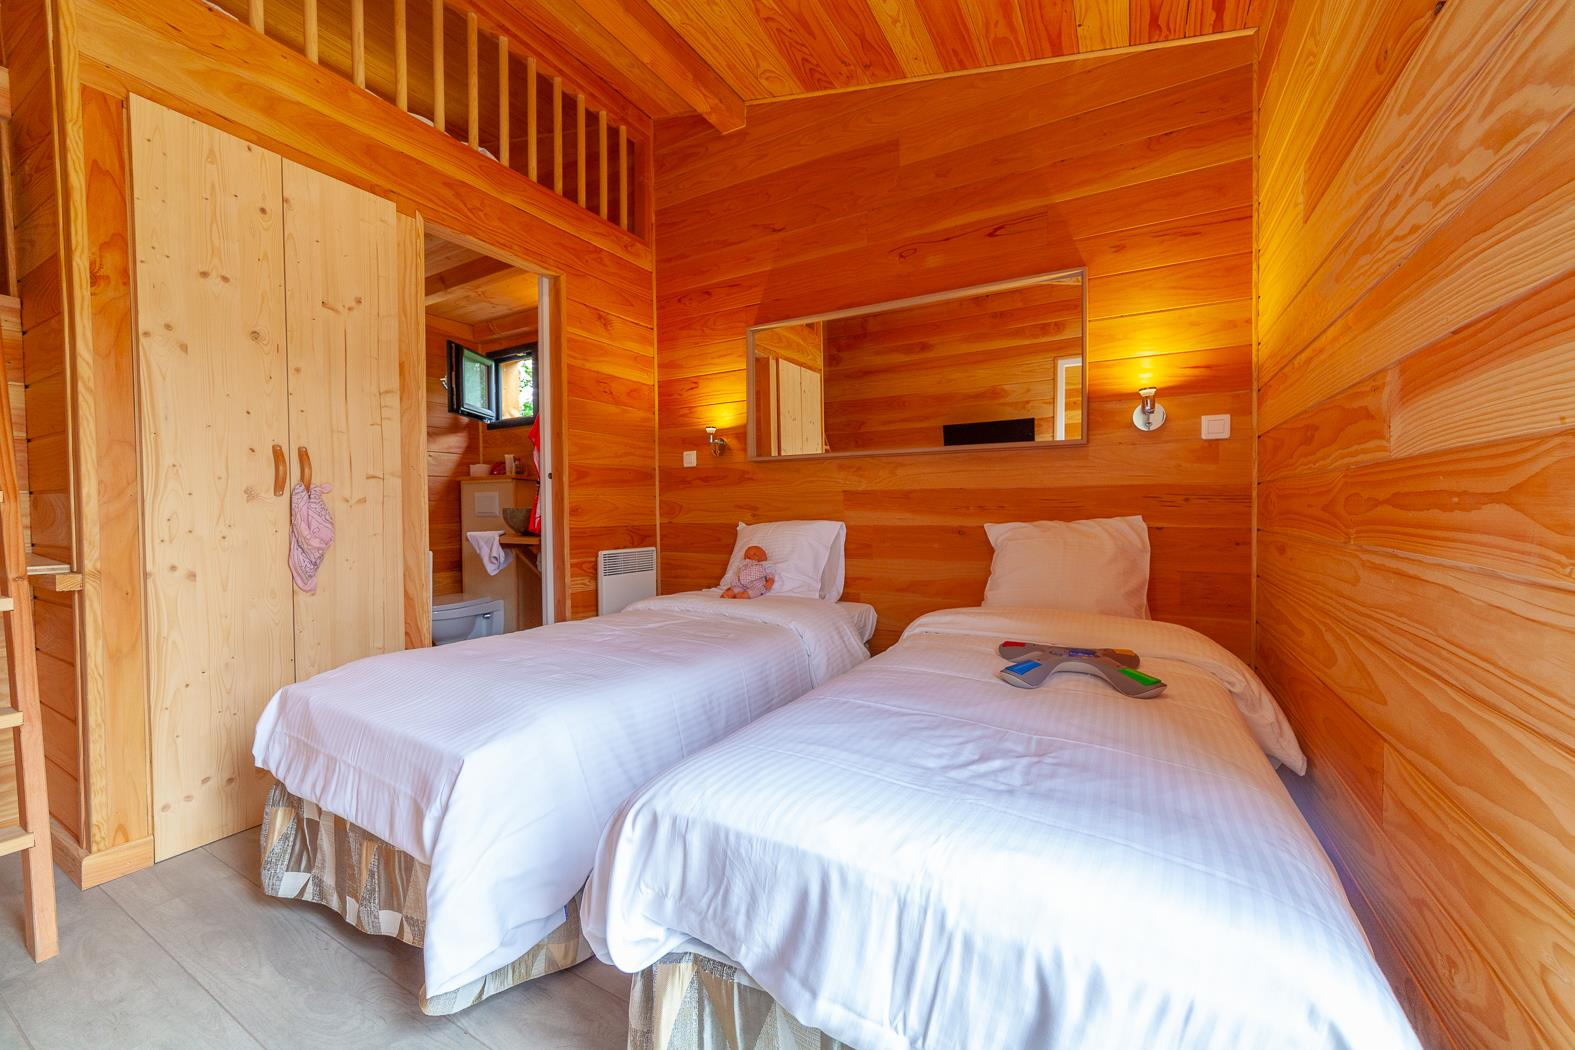 Zimmer - Hotelzimmer In Der Ecolochic Chalet - Sites et Paysages Le Moulin